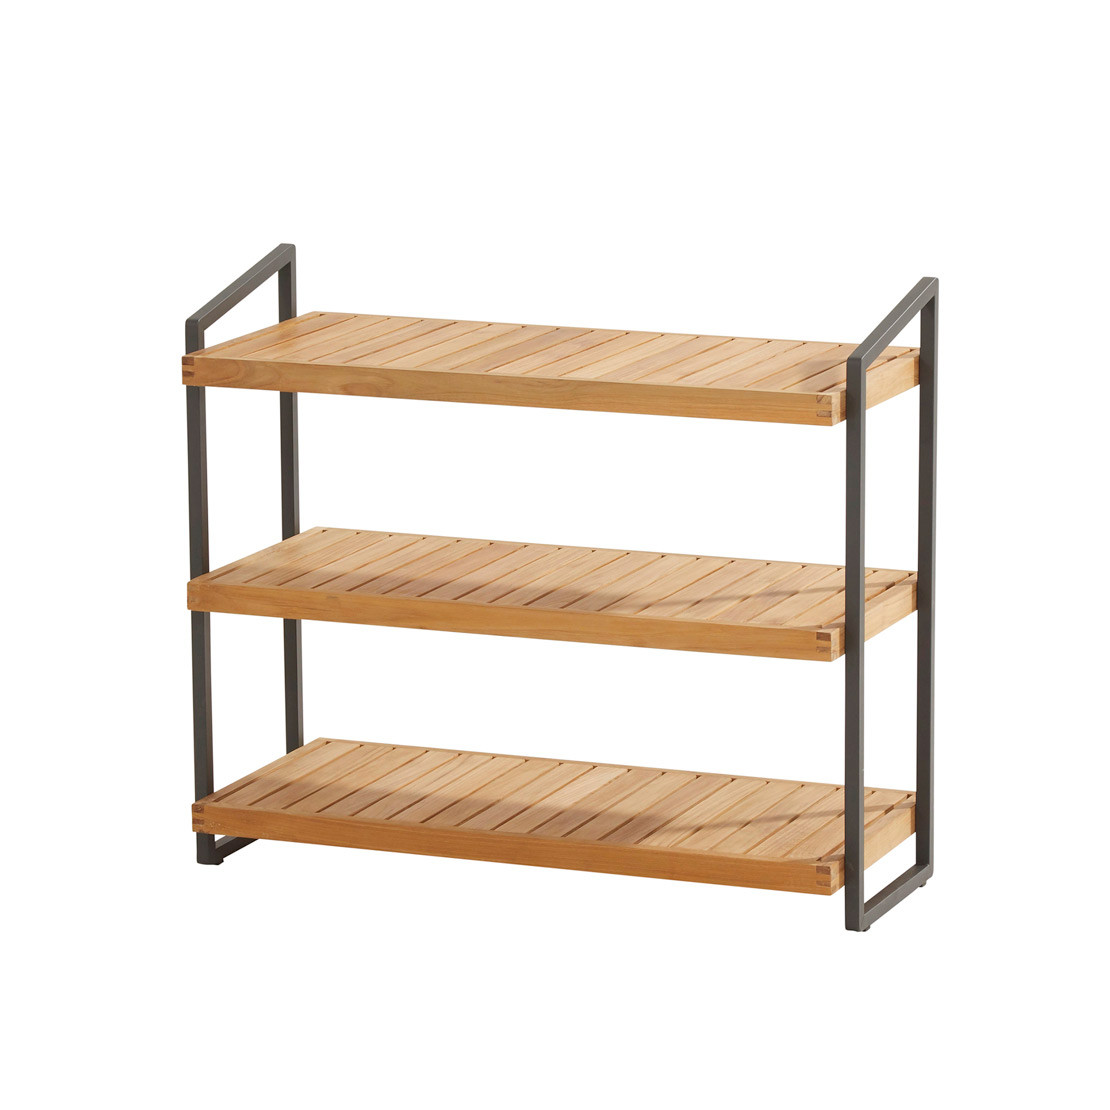 Rack with 3 shelves 90x40x80cm